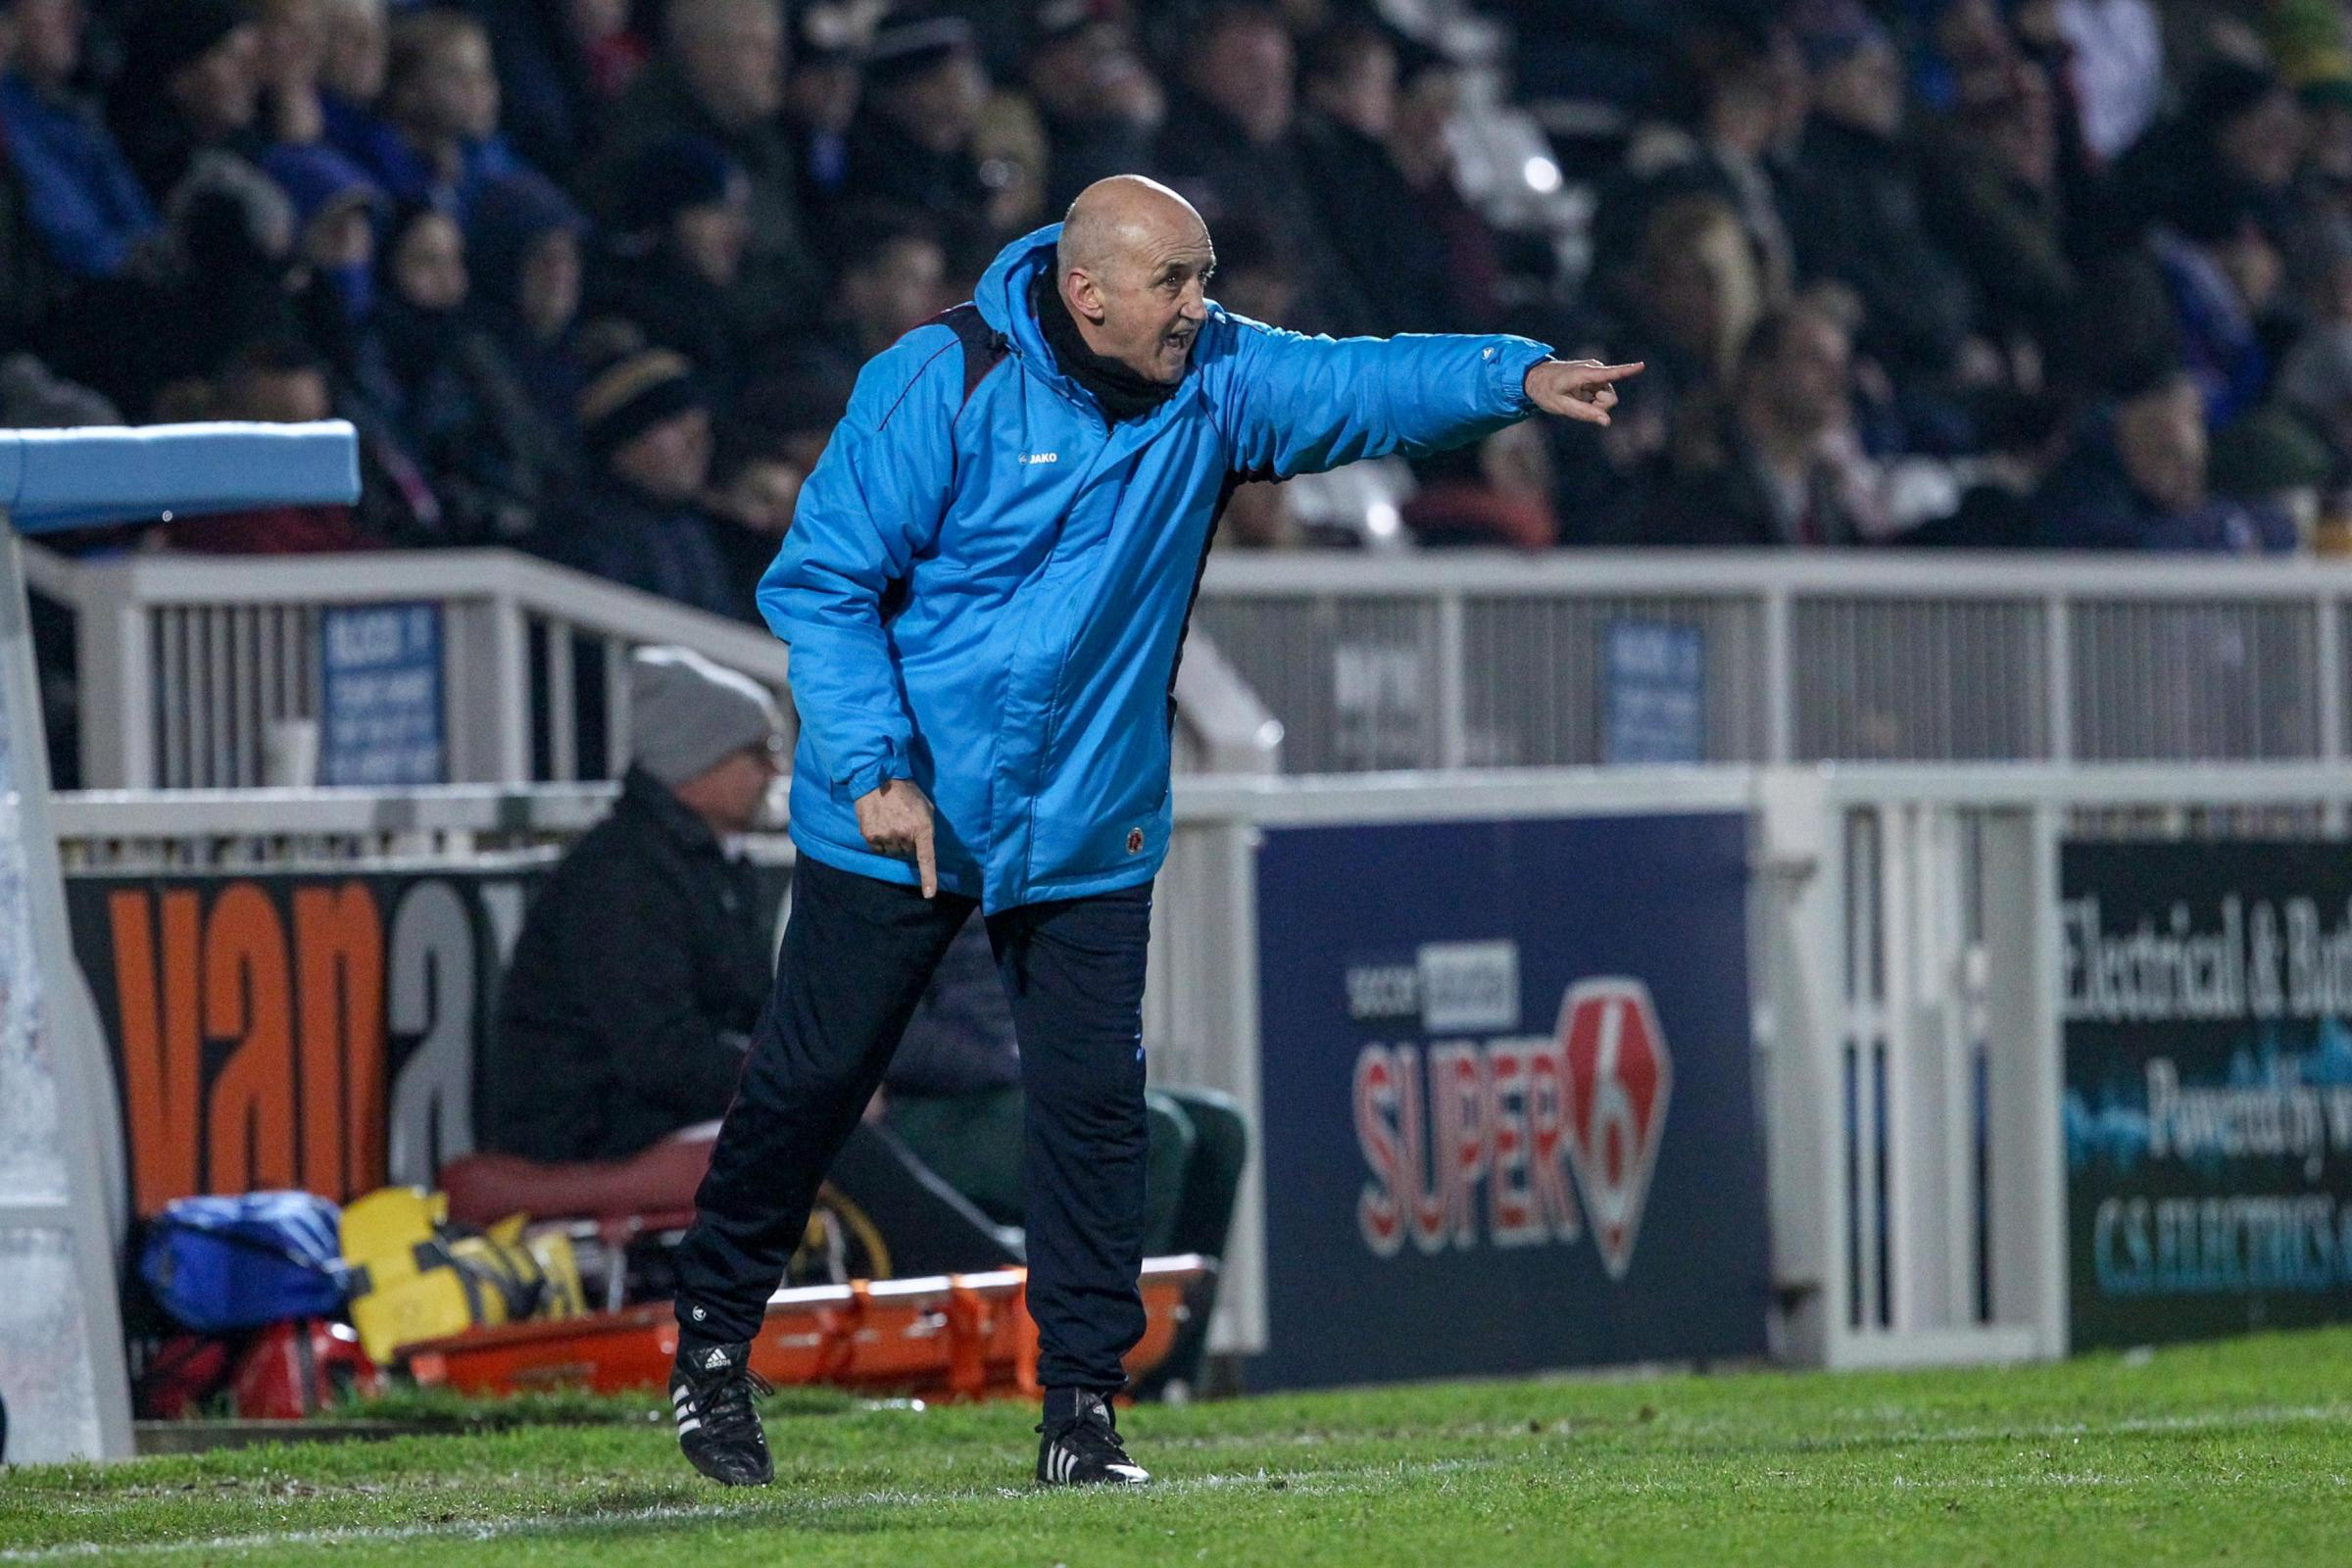 Hartlepool United manager Richard Money during the Vanarama National League match between Hartlepool United and Maidstone United  at Victoria Park, Hartlepool on Saturday 5th January 2019. (Credit: Mark Fletcher | Shutter Press).